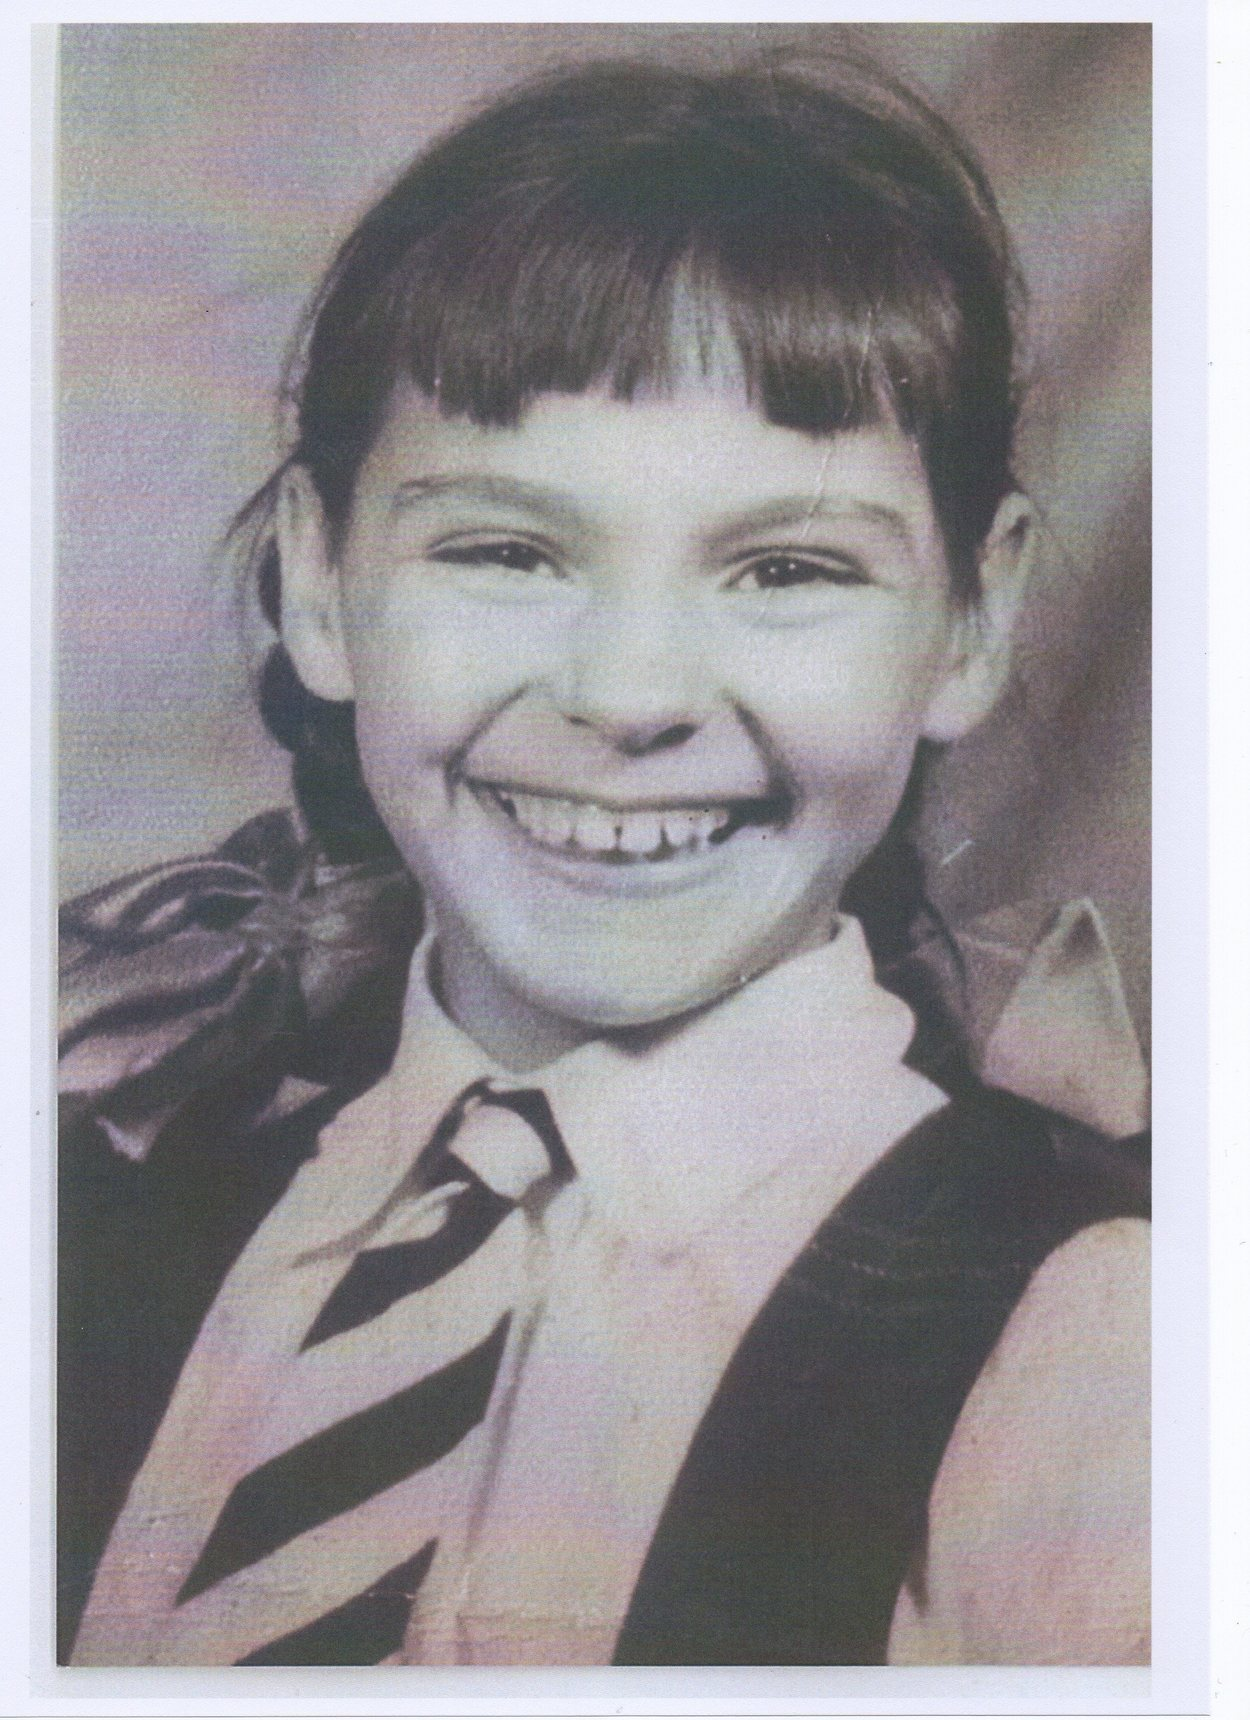 This is me aged 9, ready for school